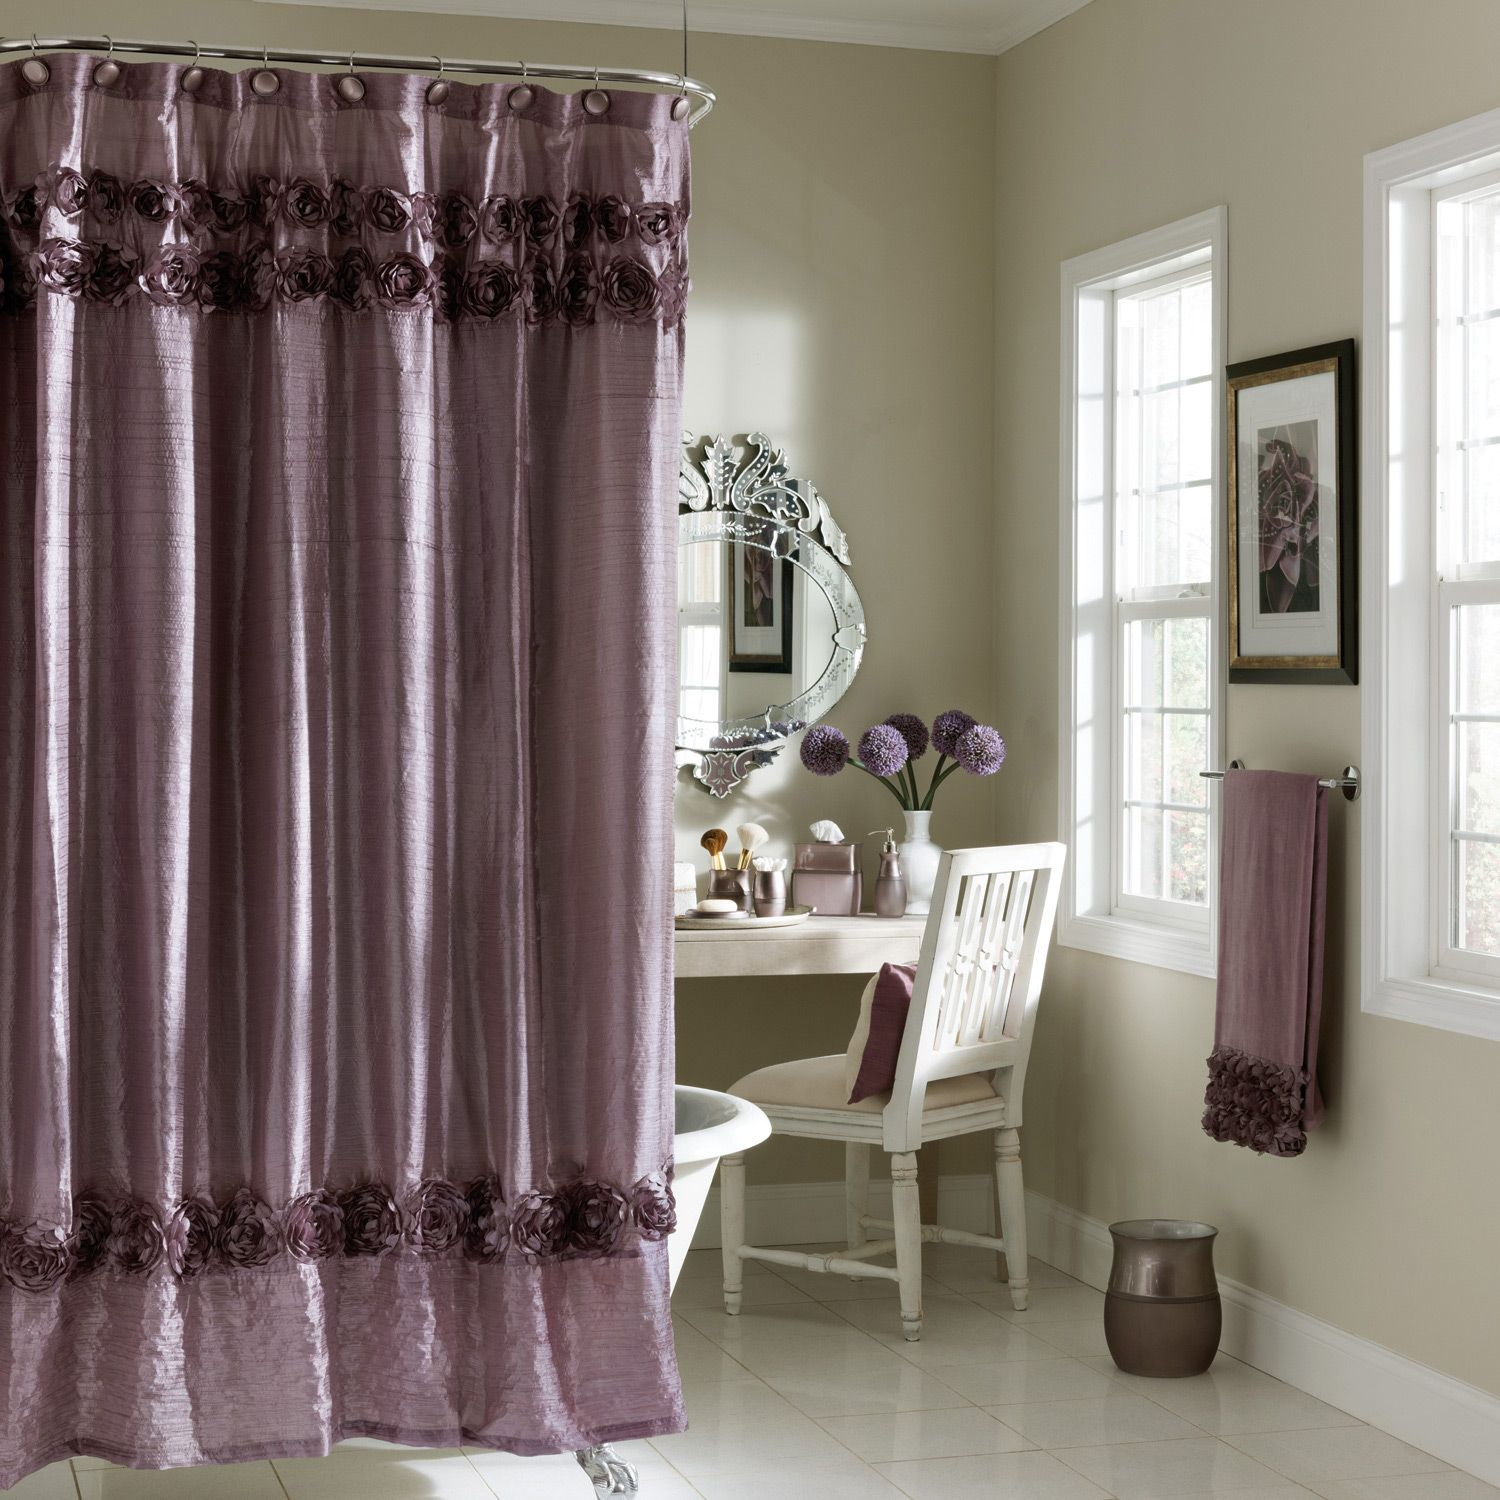 graduated-roses-shower-curtain